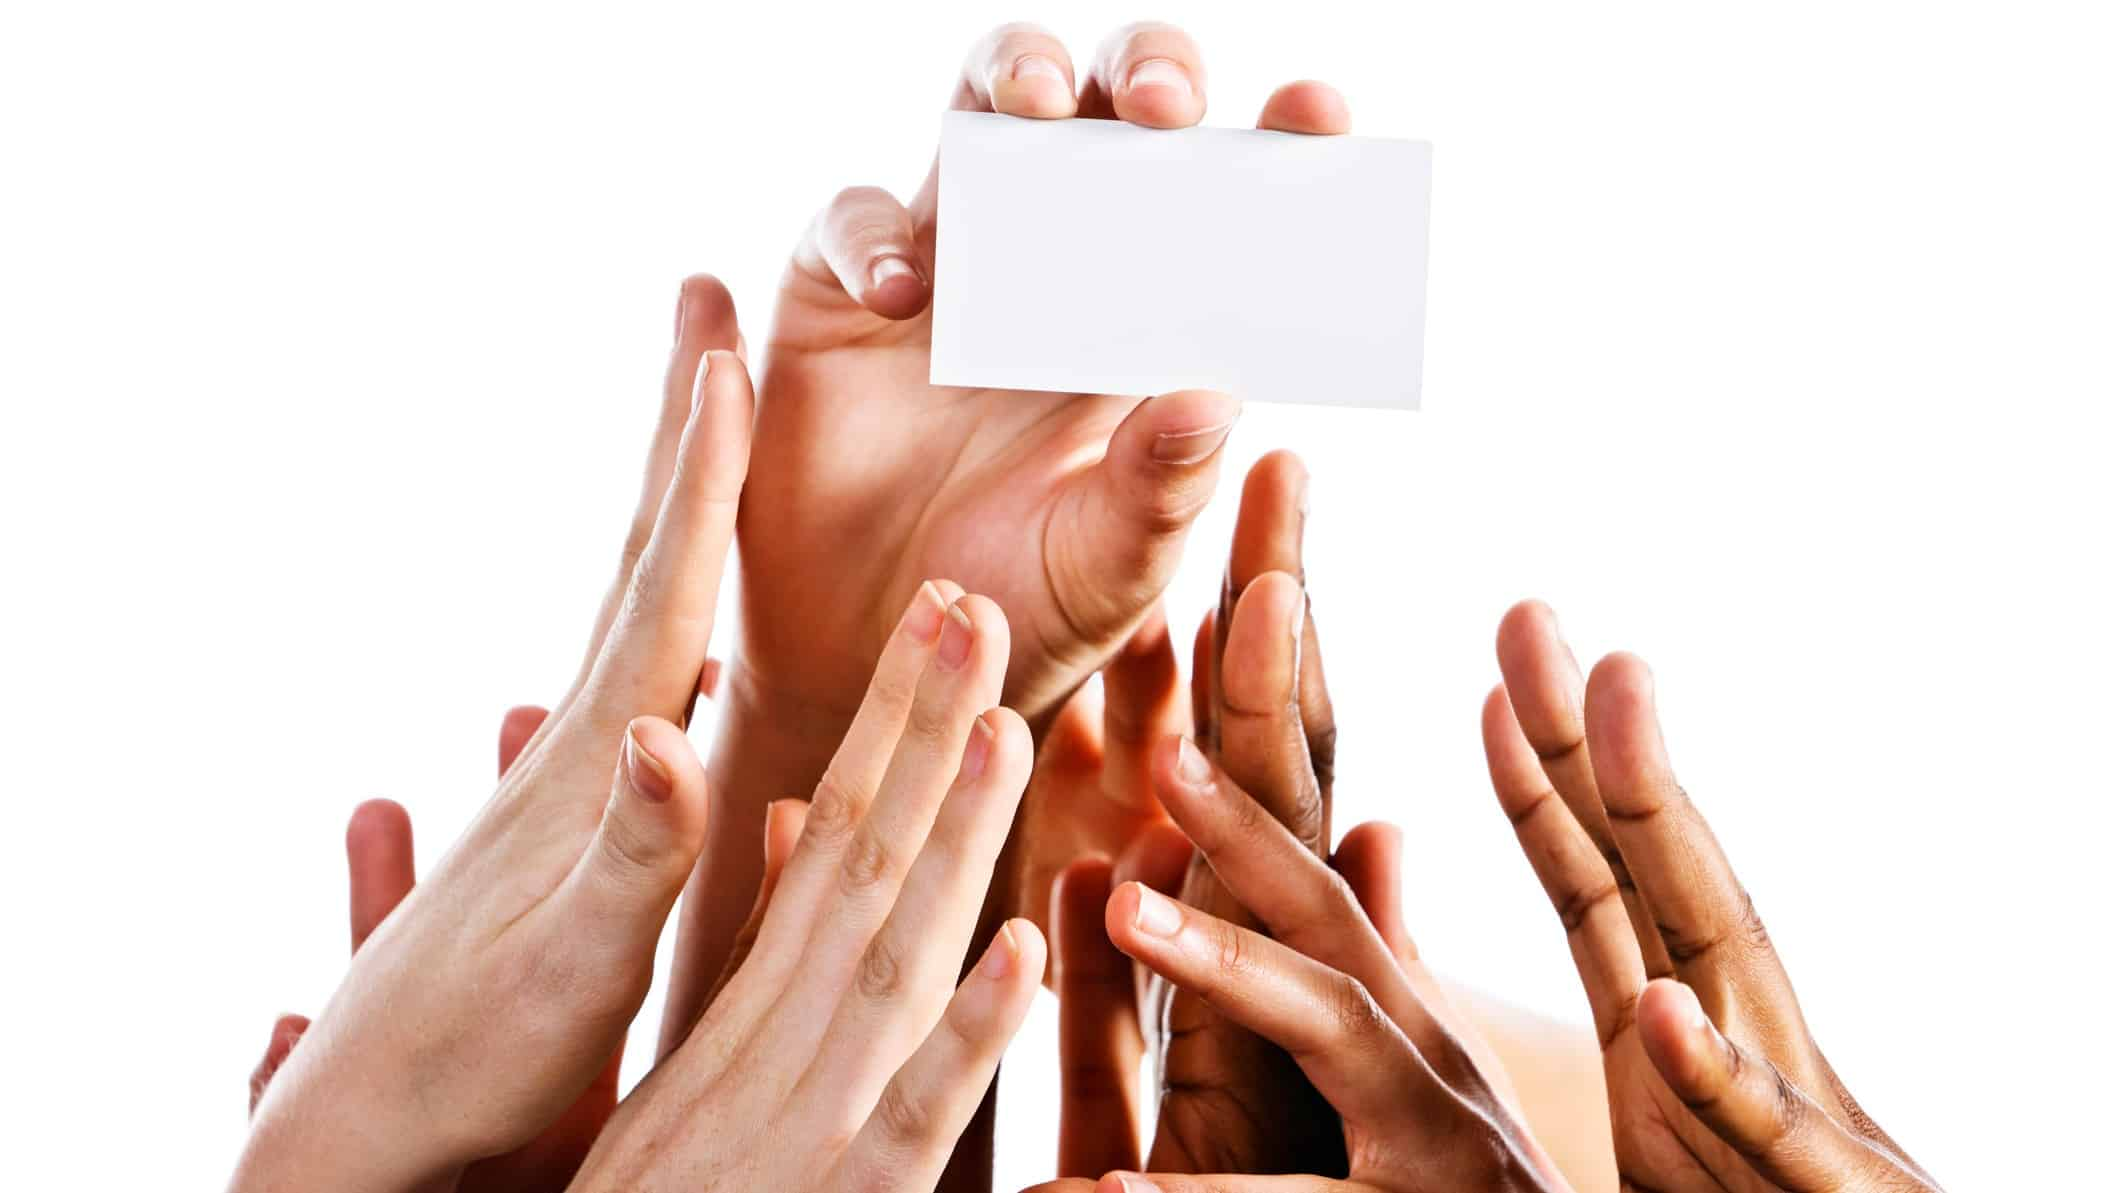 rising fintech share price represented by hands all grabbing at a credit card